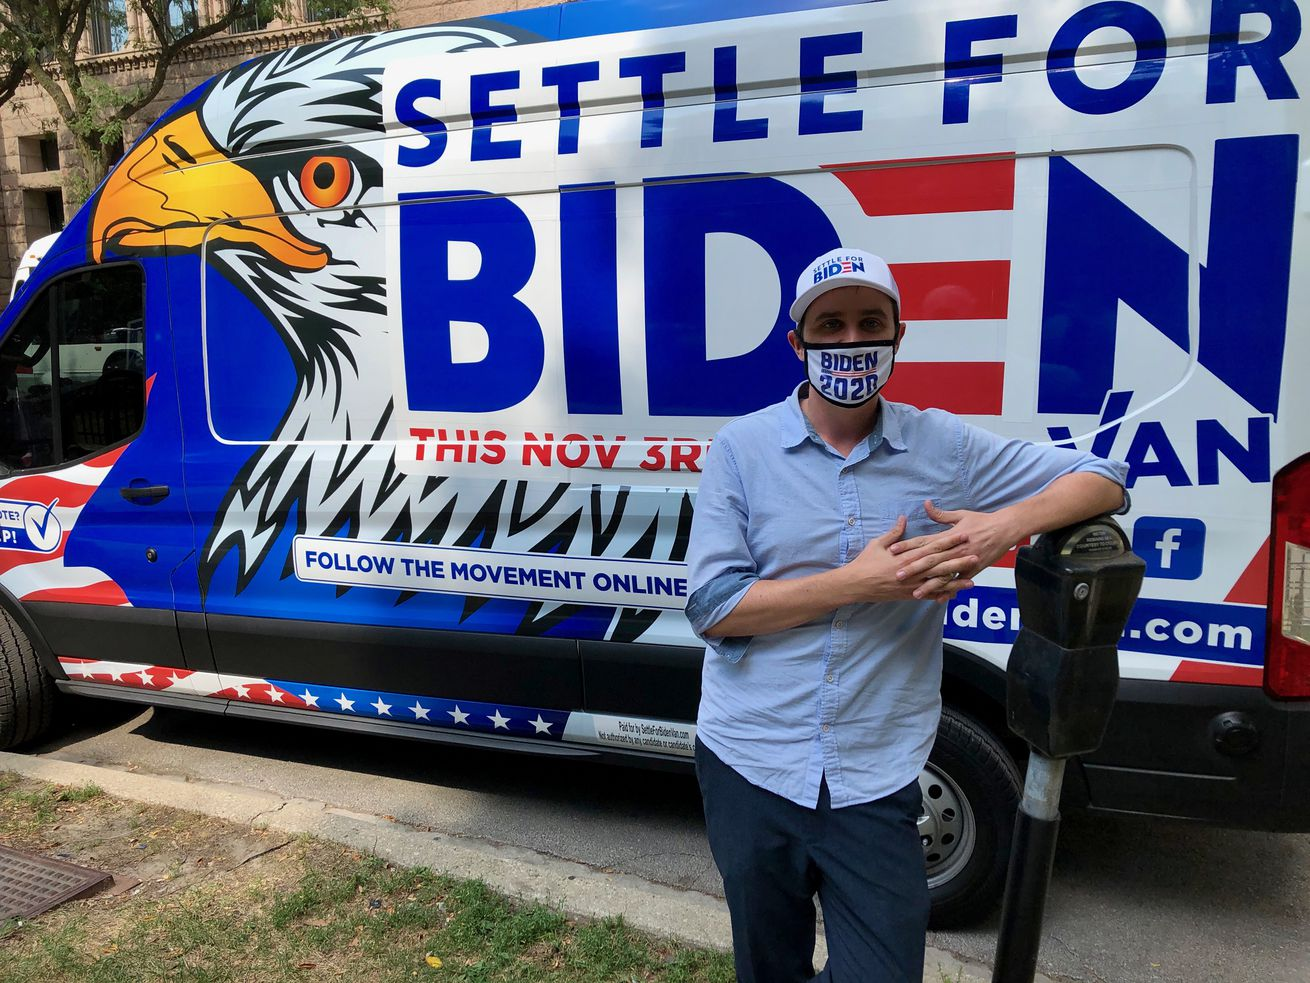 """A man in front of a red, white and blue van with """"Settle for Biden"""" and an eagle."""